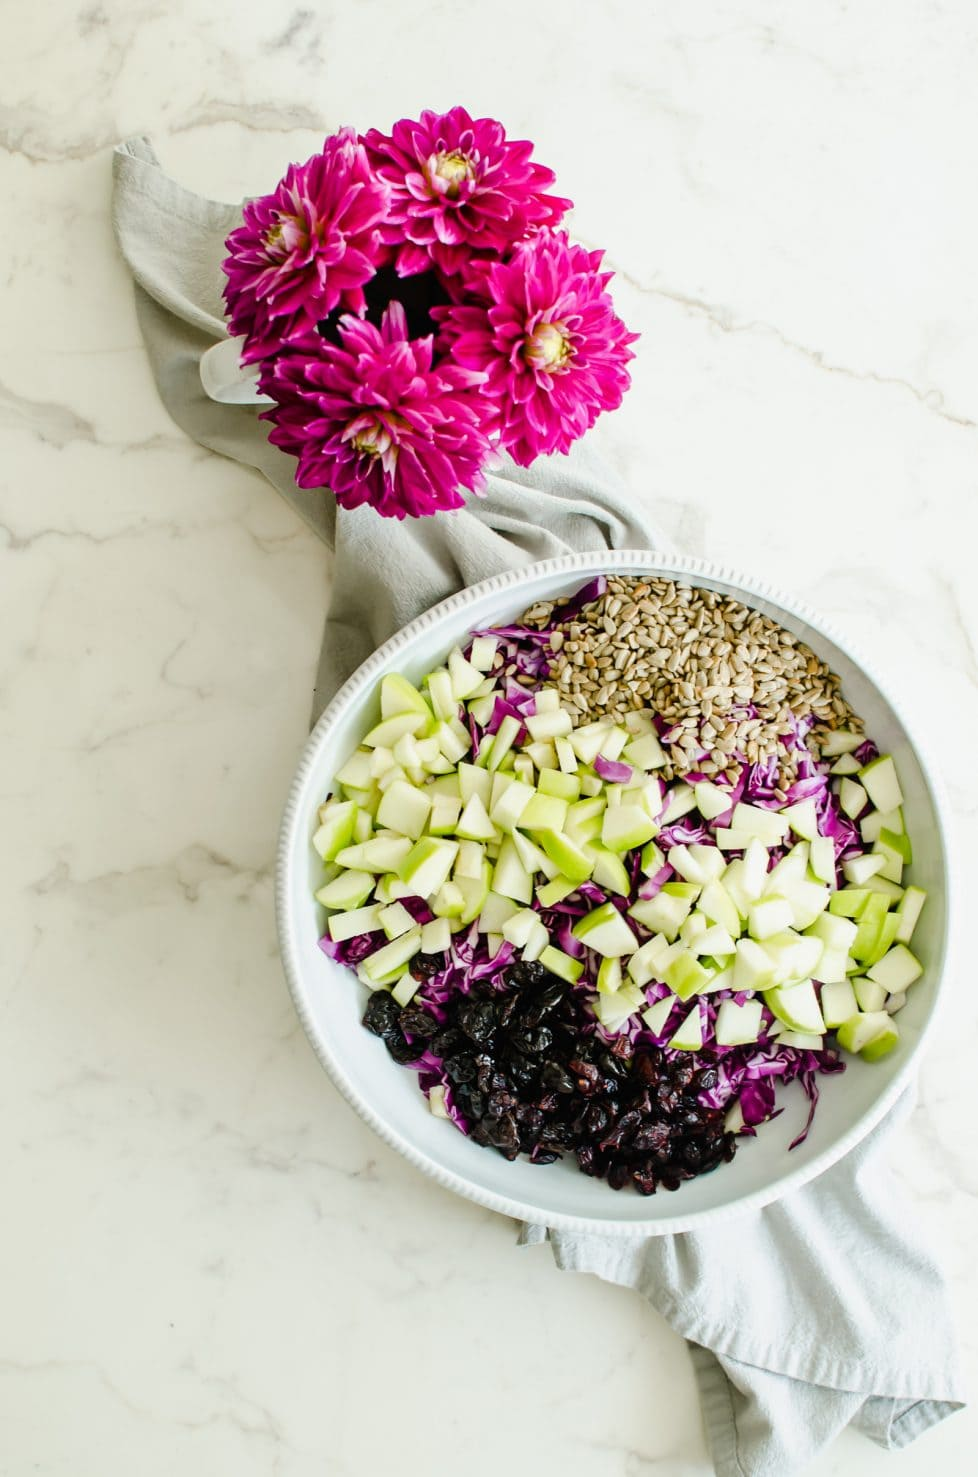 An overhead shot of shredded red cabbage, chopped green apple, sunflower seeds, and dried cherries in a large white bowl.